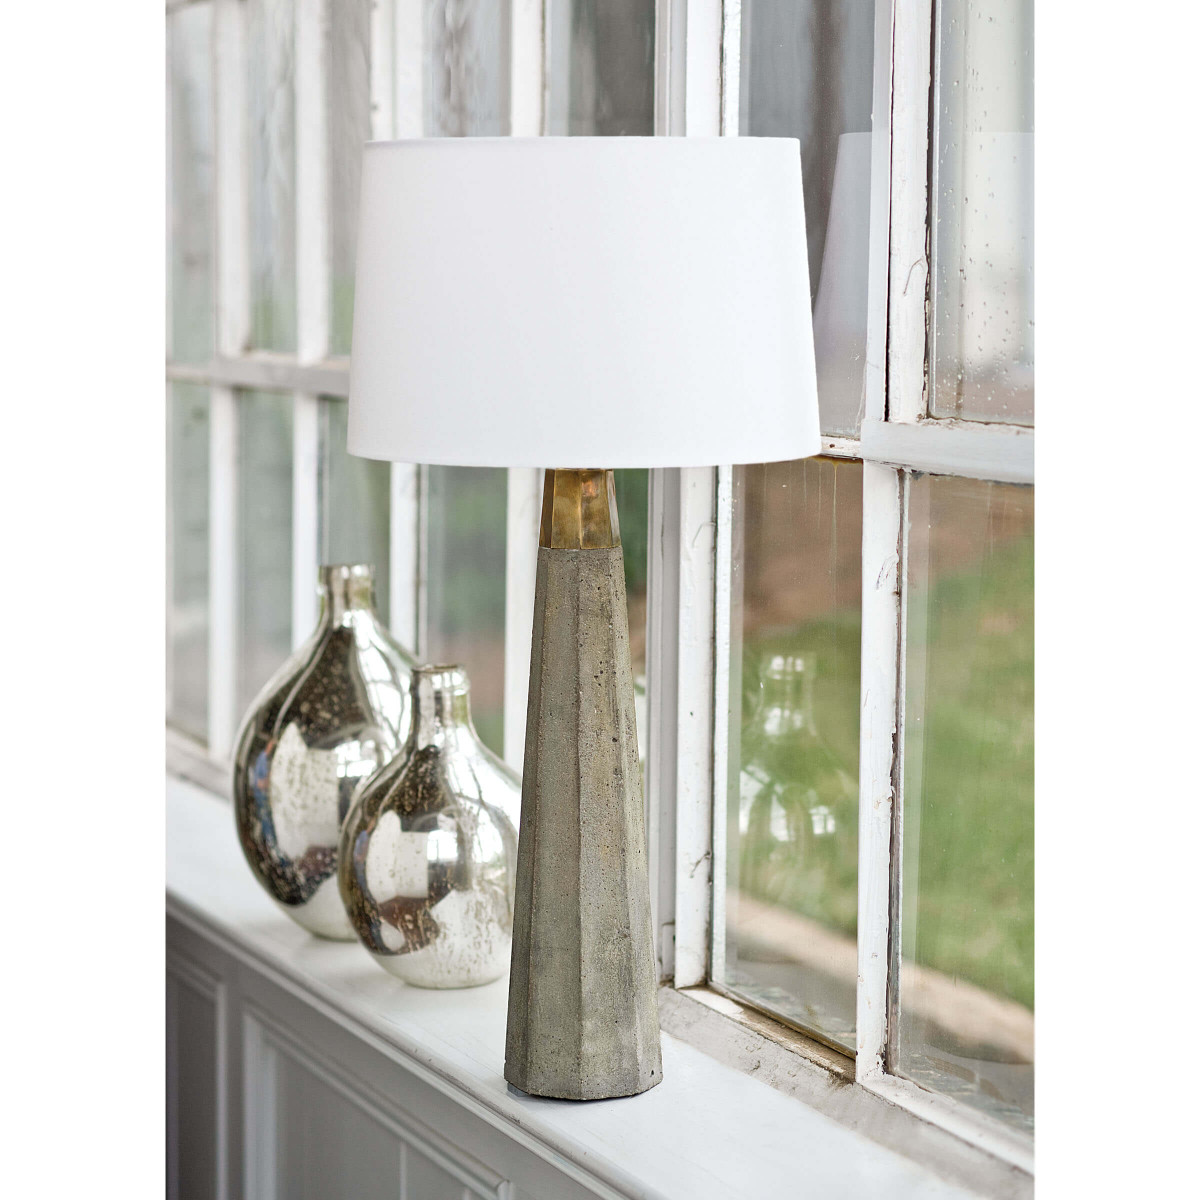 Beretta Concrete Table Lamp - Four Corners Home on Beretta Outdoor Living id=96650